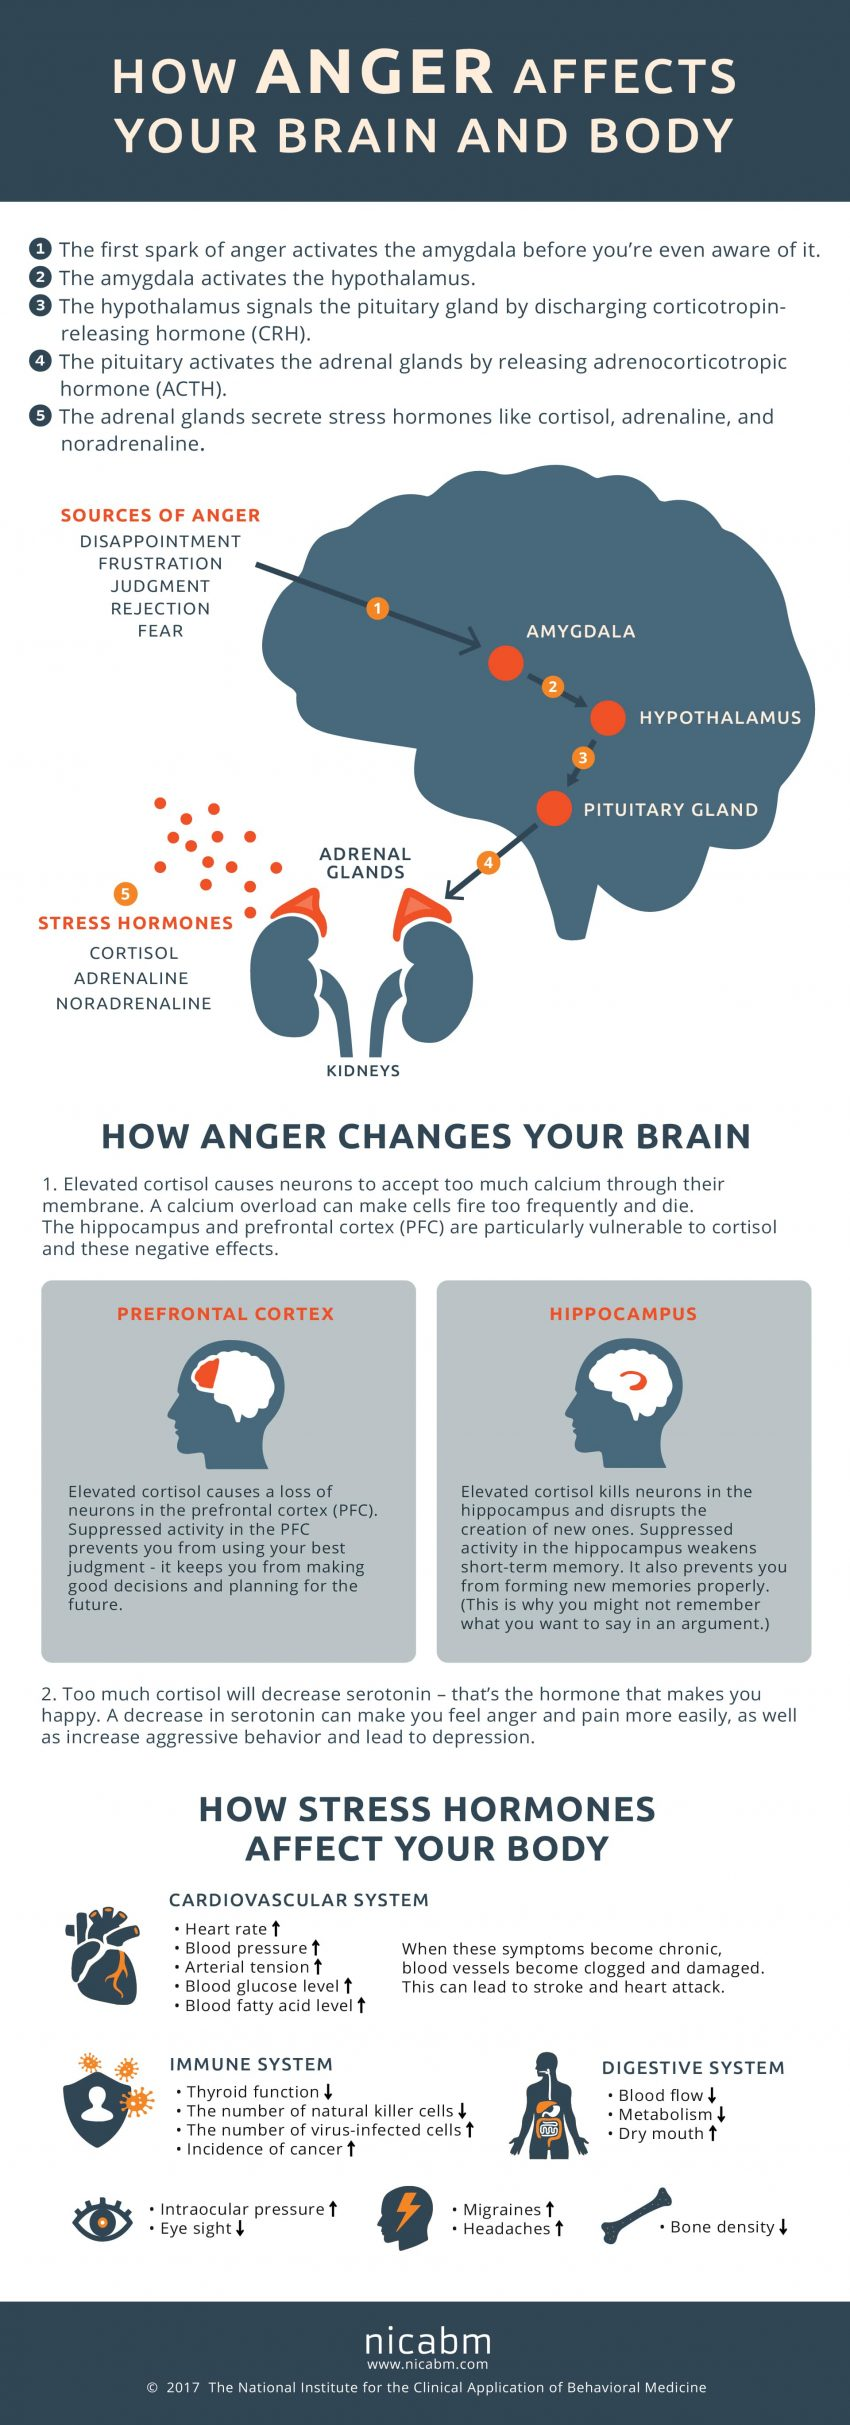 infographic-how-anger-affects-your-brain-anger-affects-your-brain